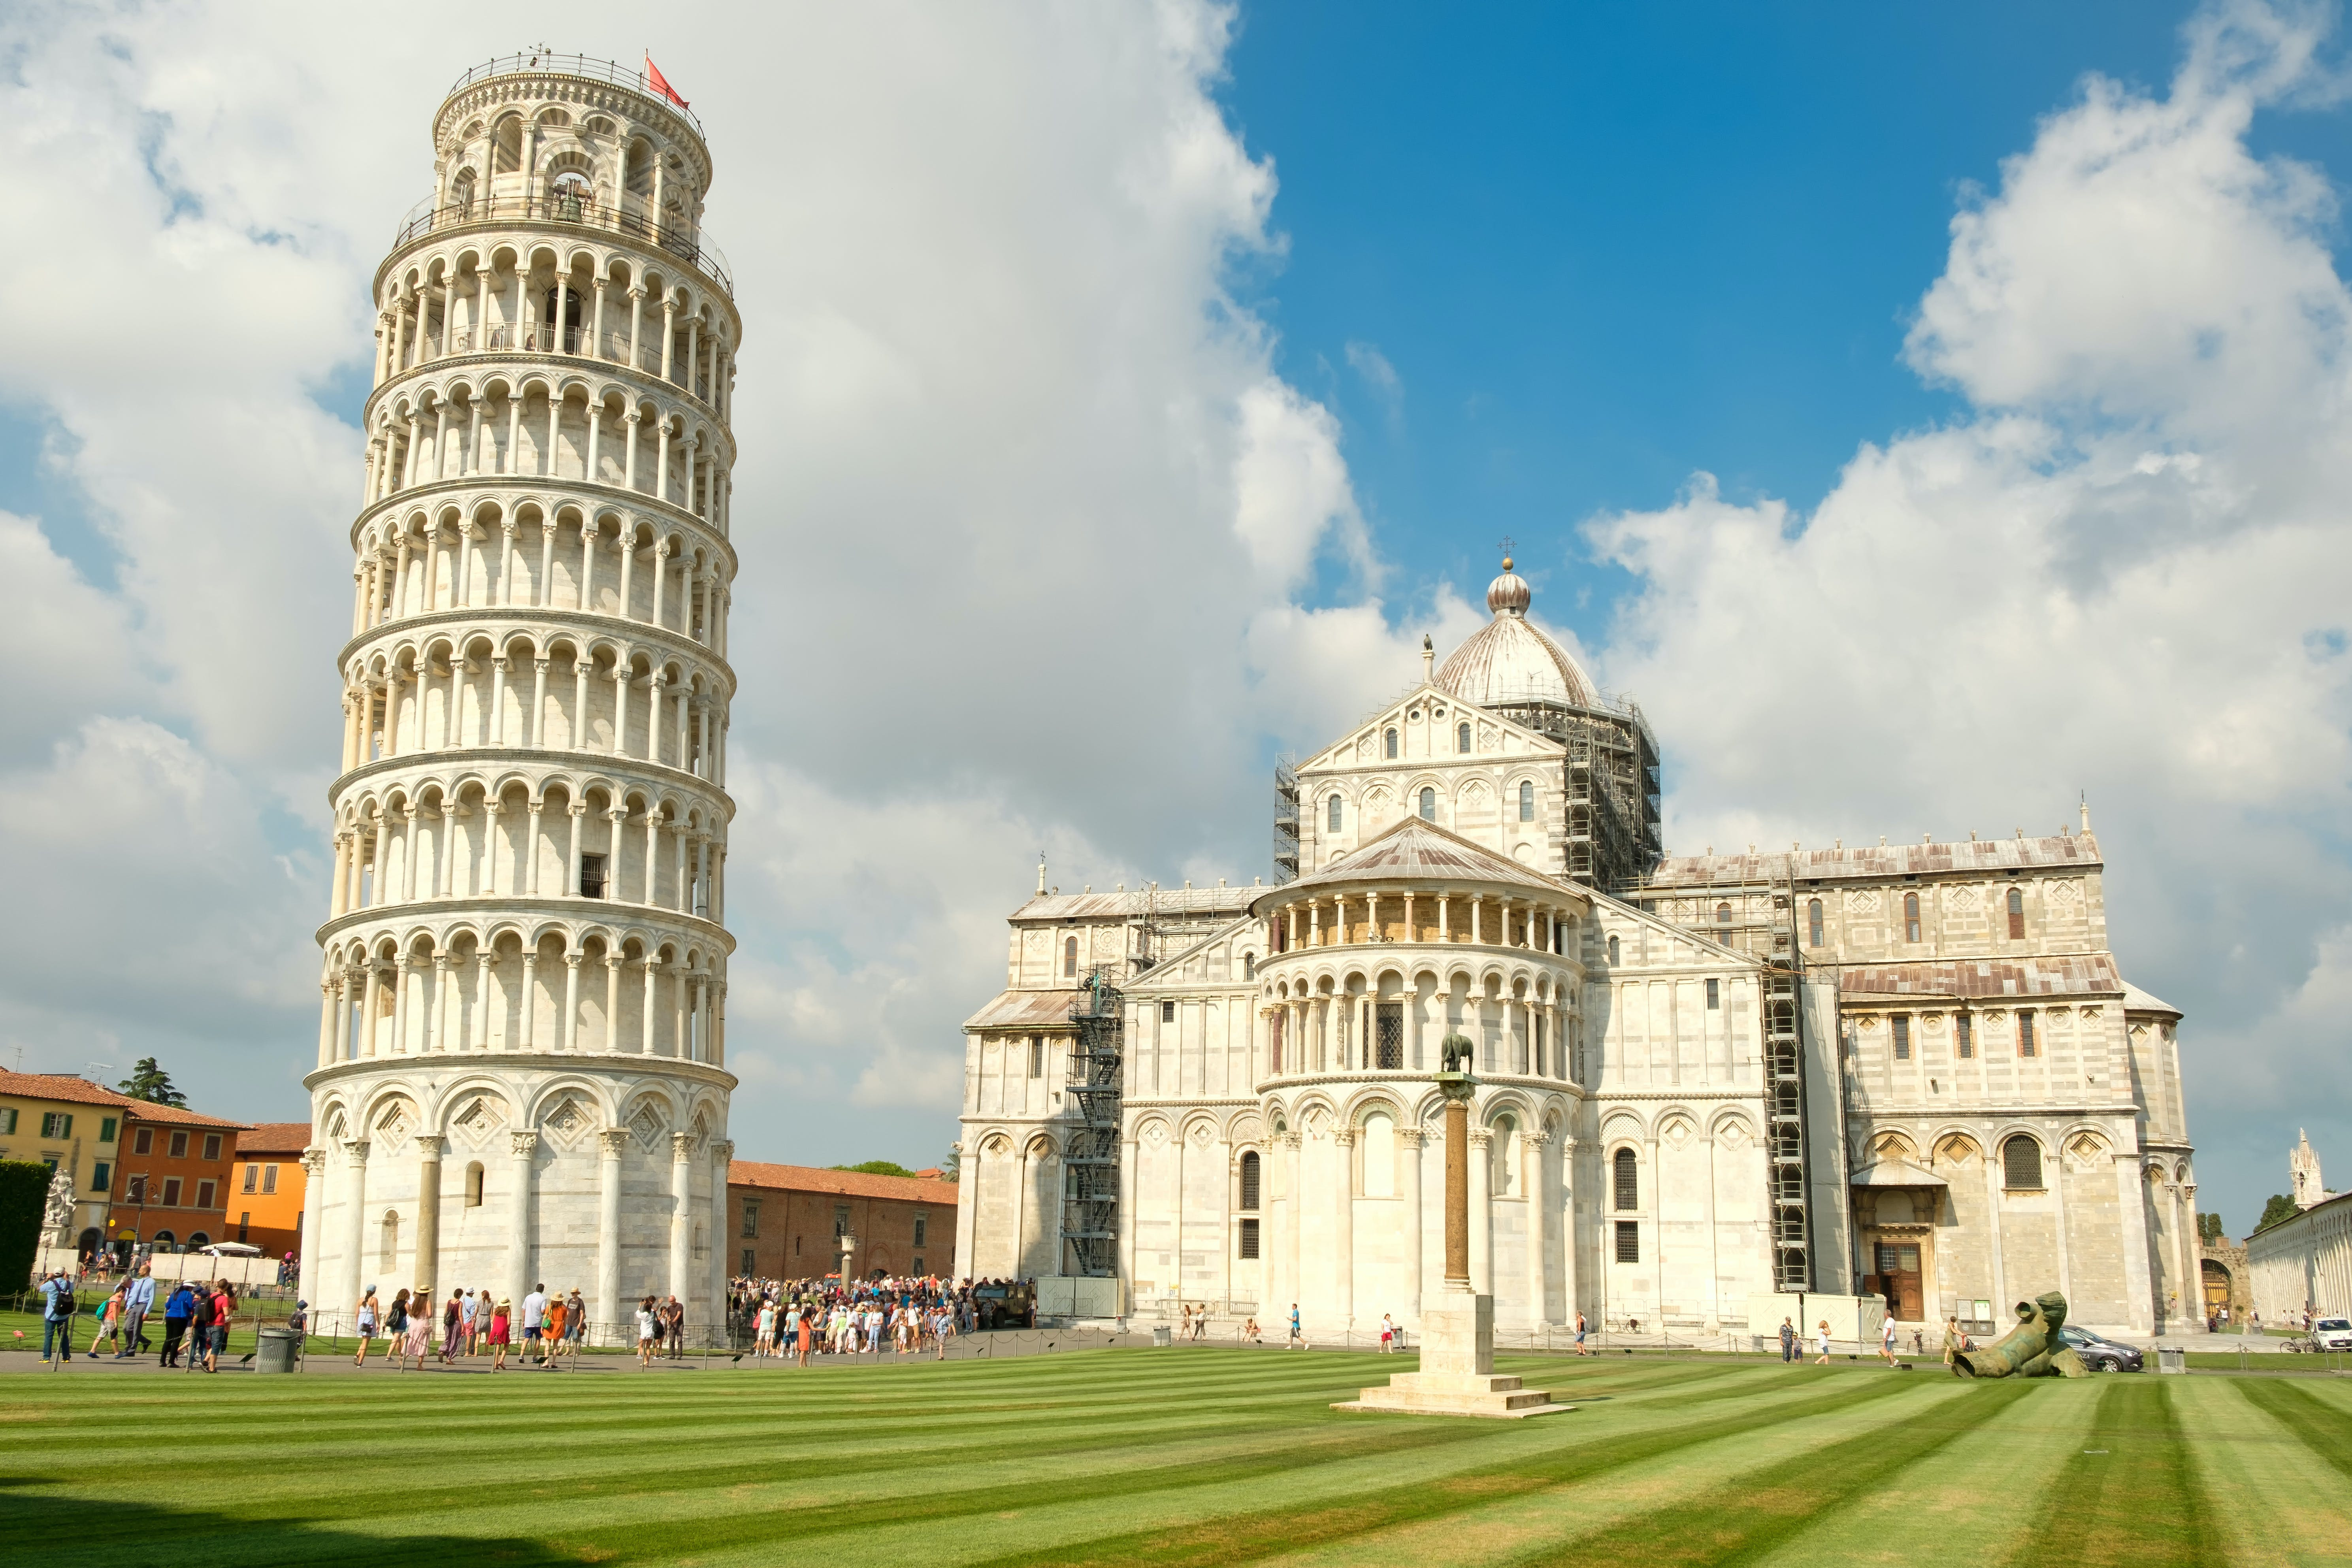 The Leaning Tower of Pisa all inclusive skip-the-line tickets